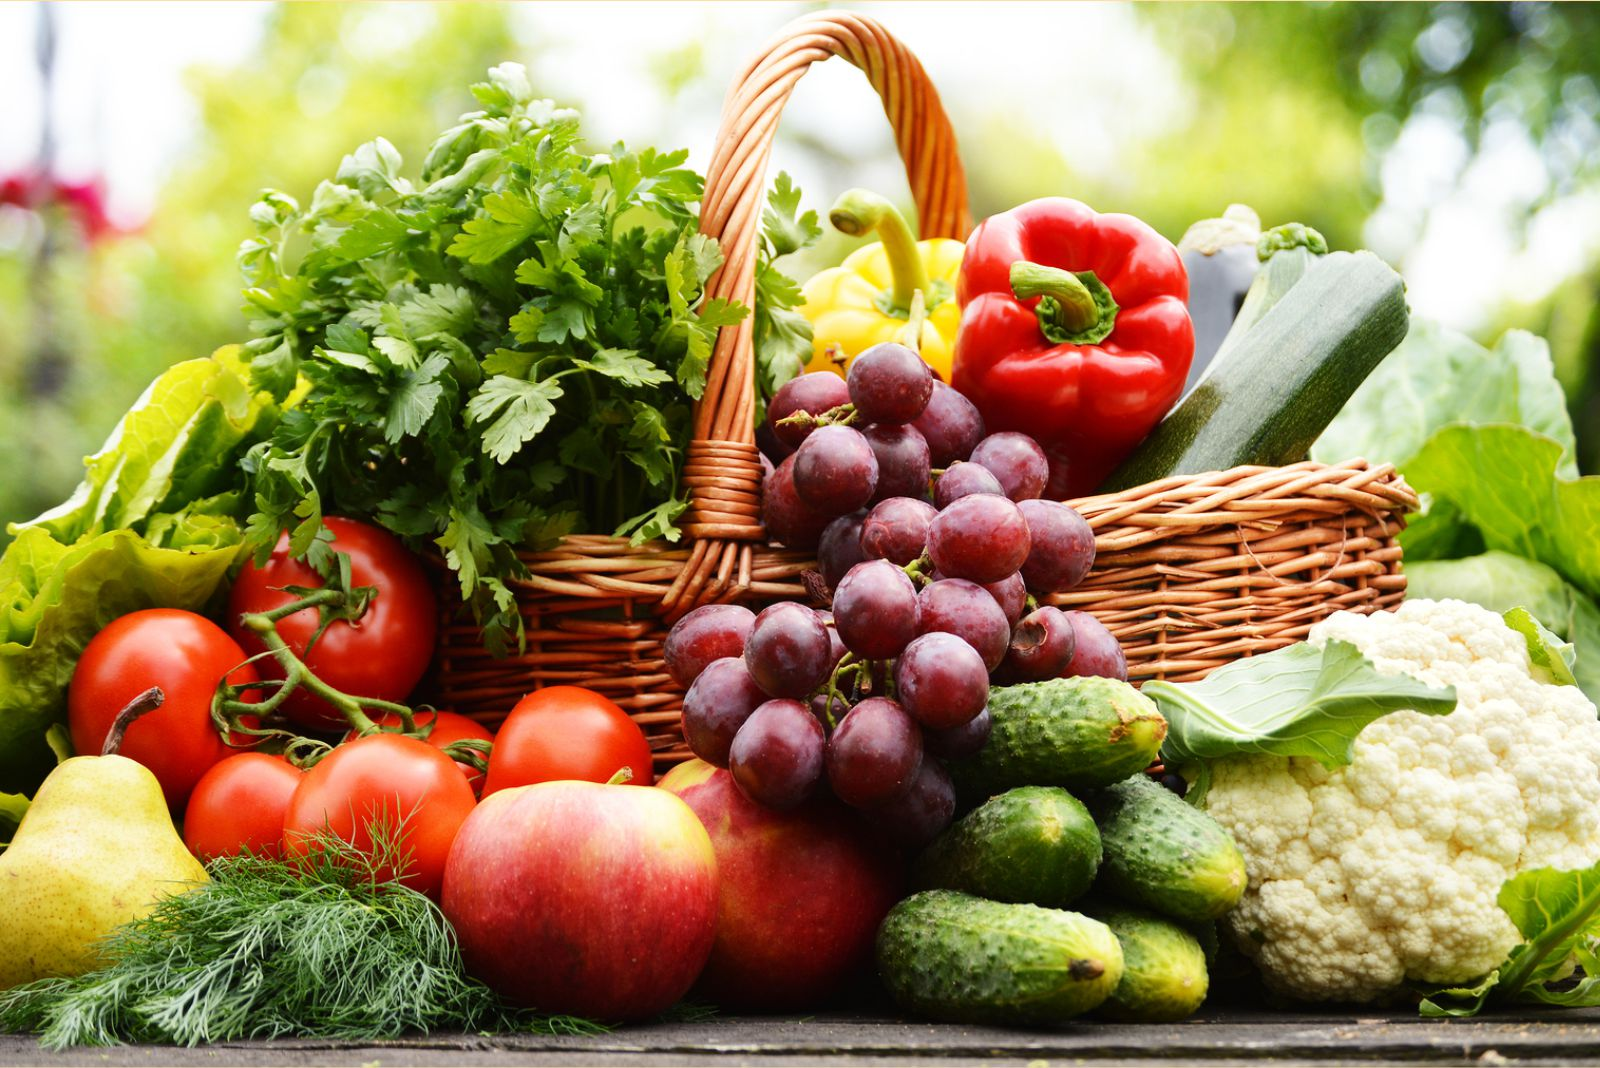 Include More Fresh Fruits and Vegetables